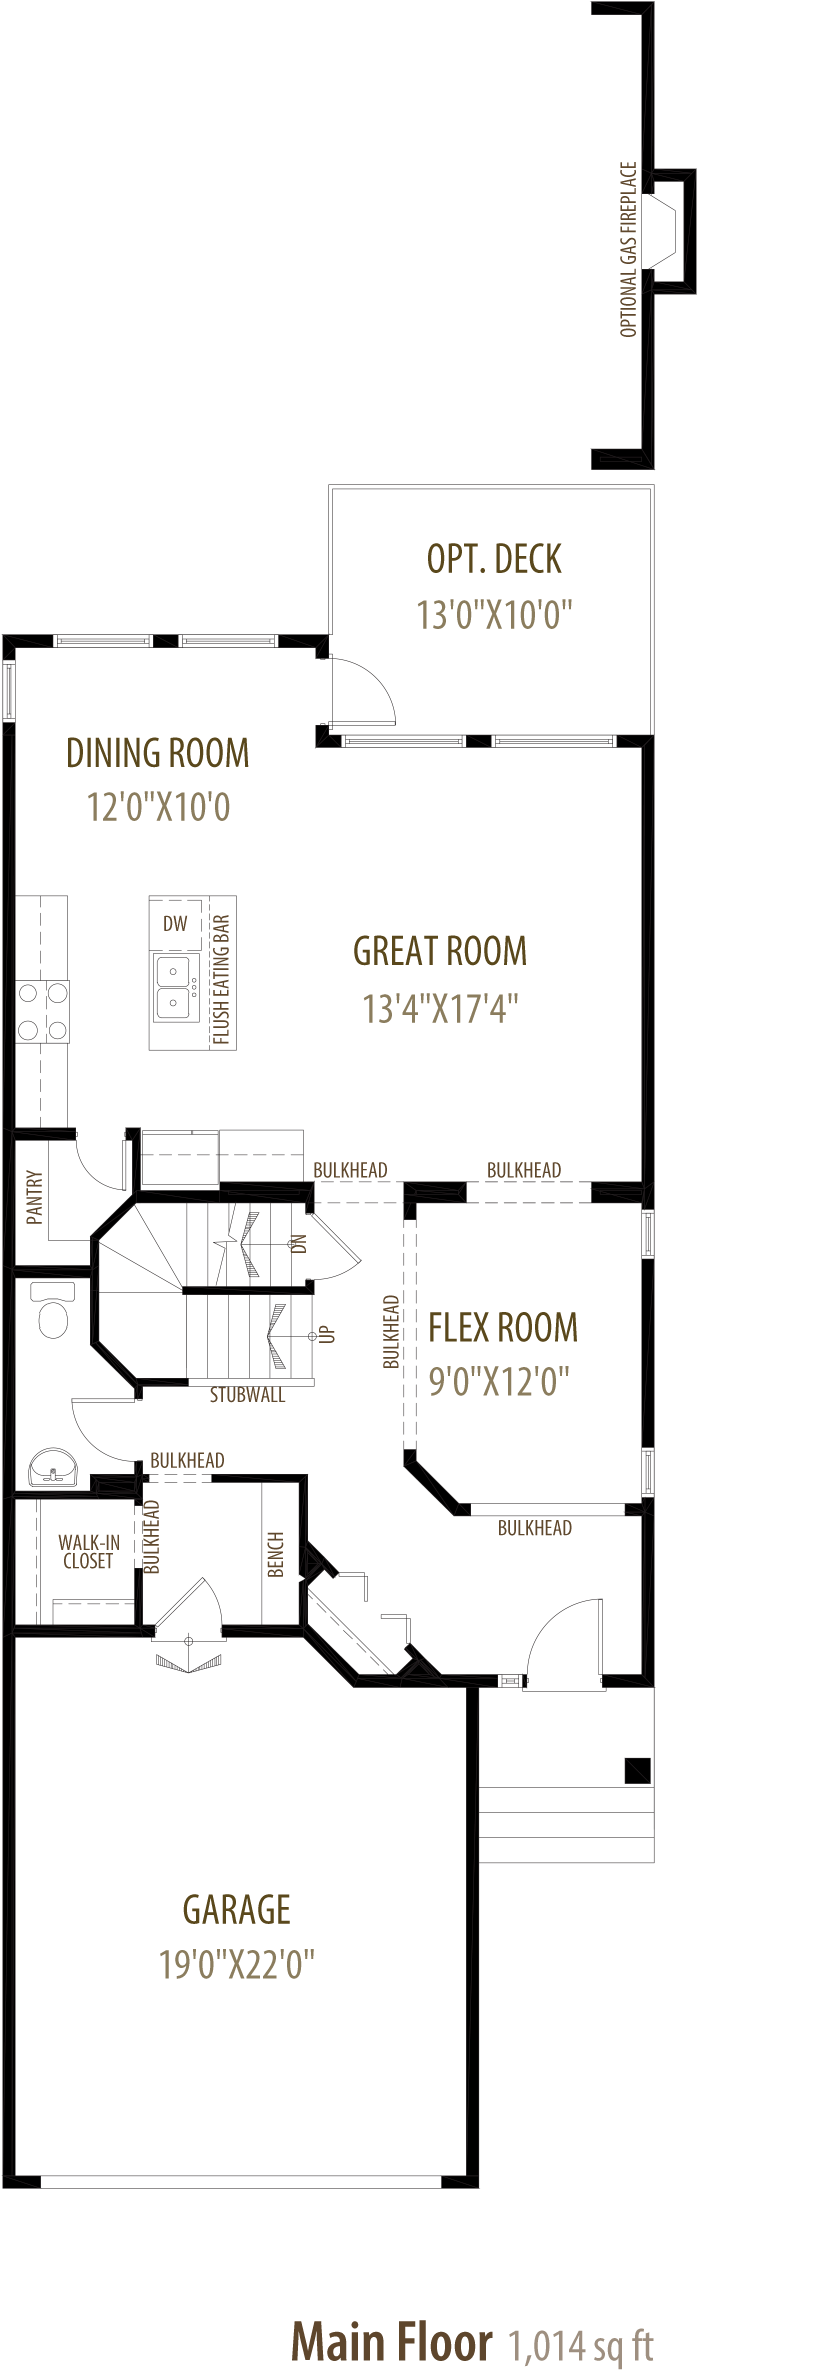 Arlington III Floorplan